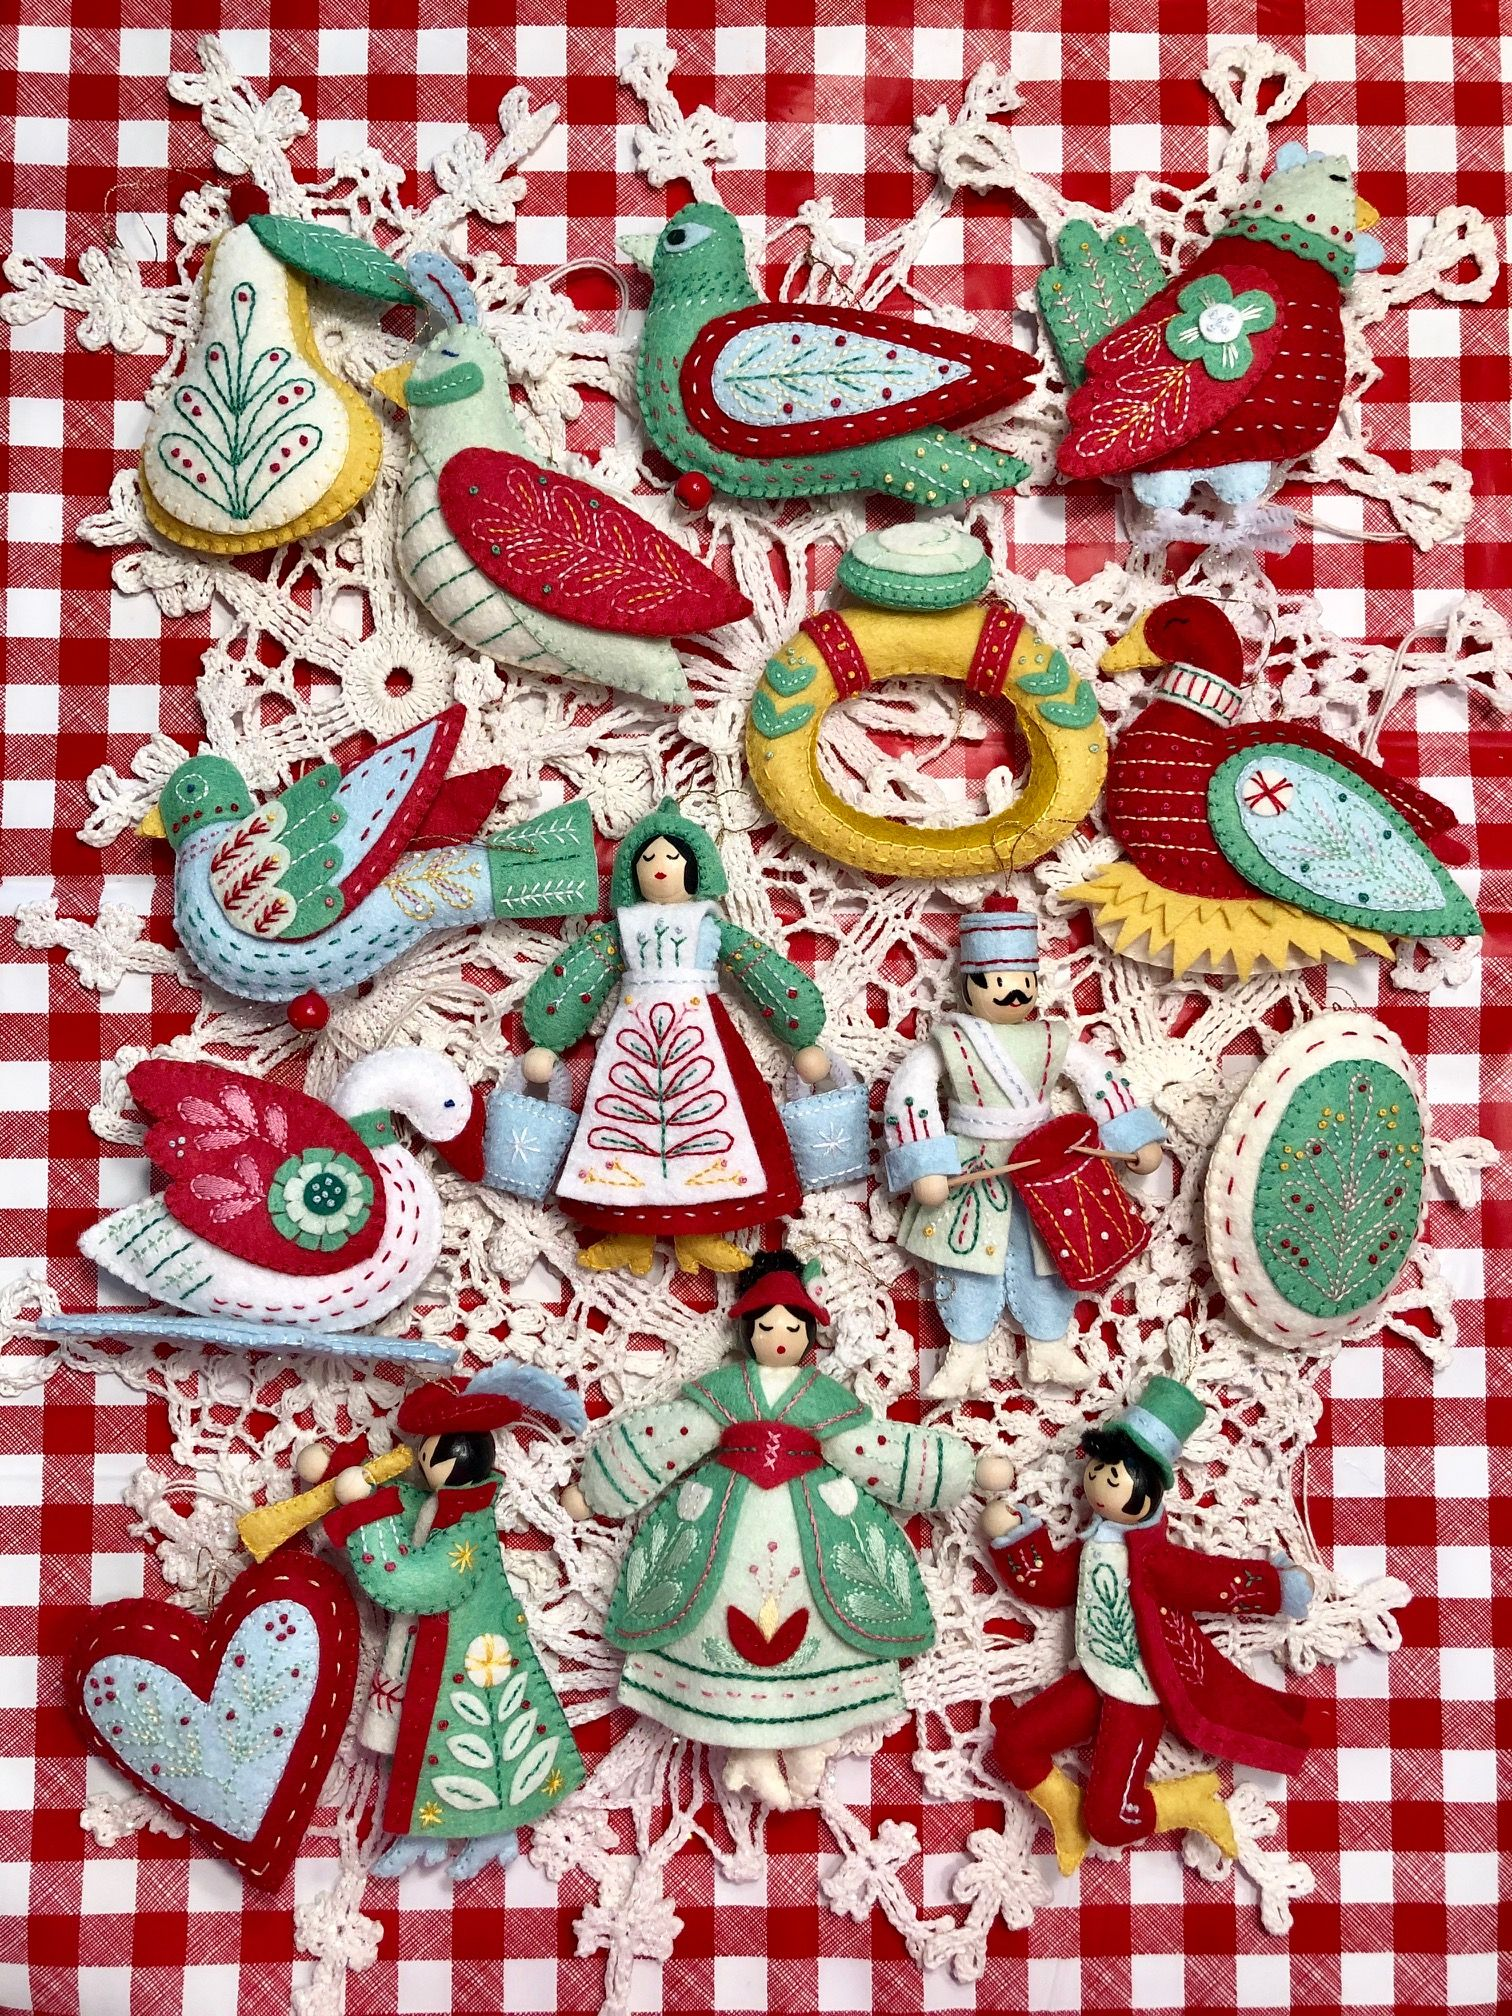 12 Days Of Christmas Ornaments Christmas Crafts Sewing Christmas Card Crafts Felt Christmas Ornaments